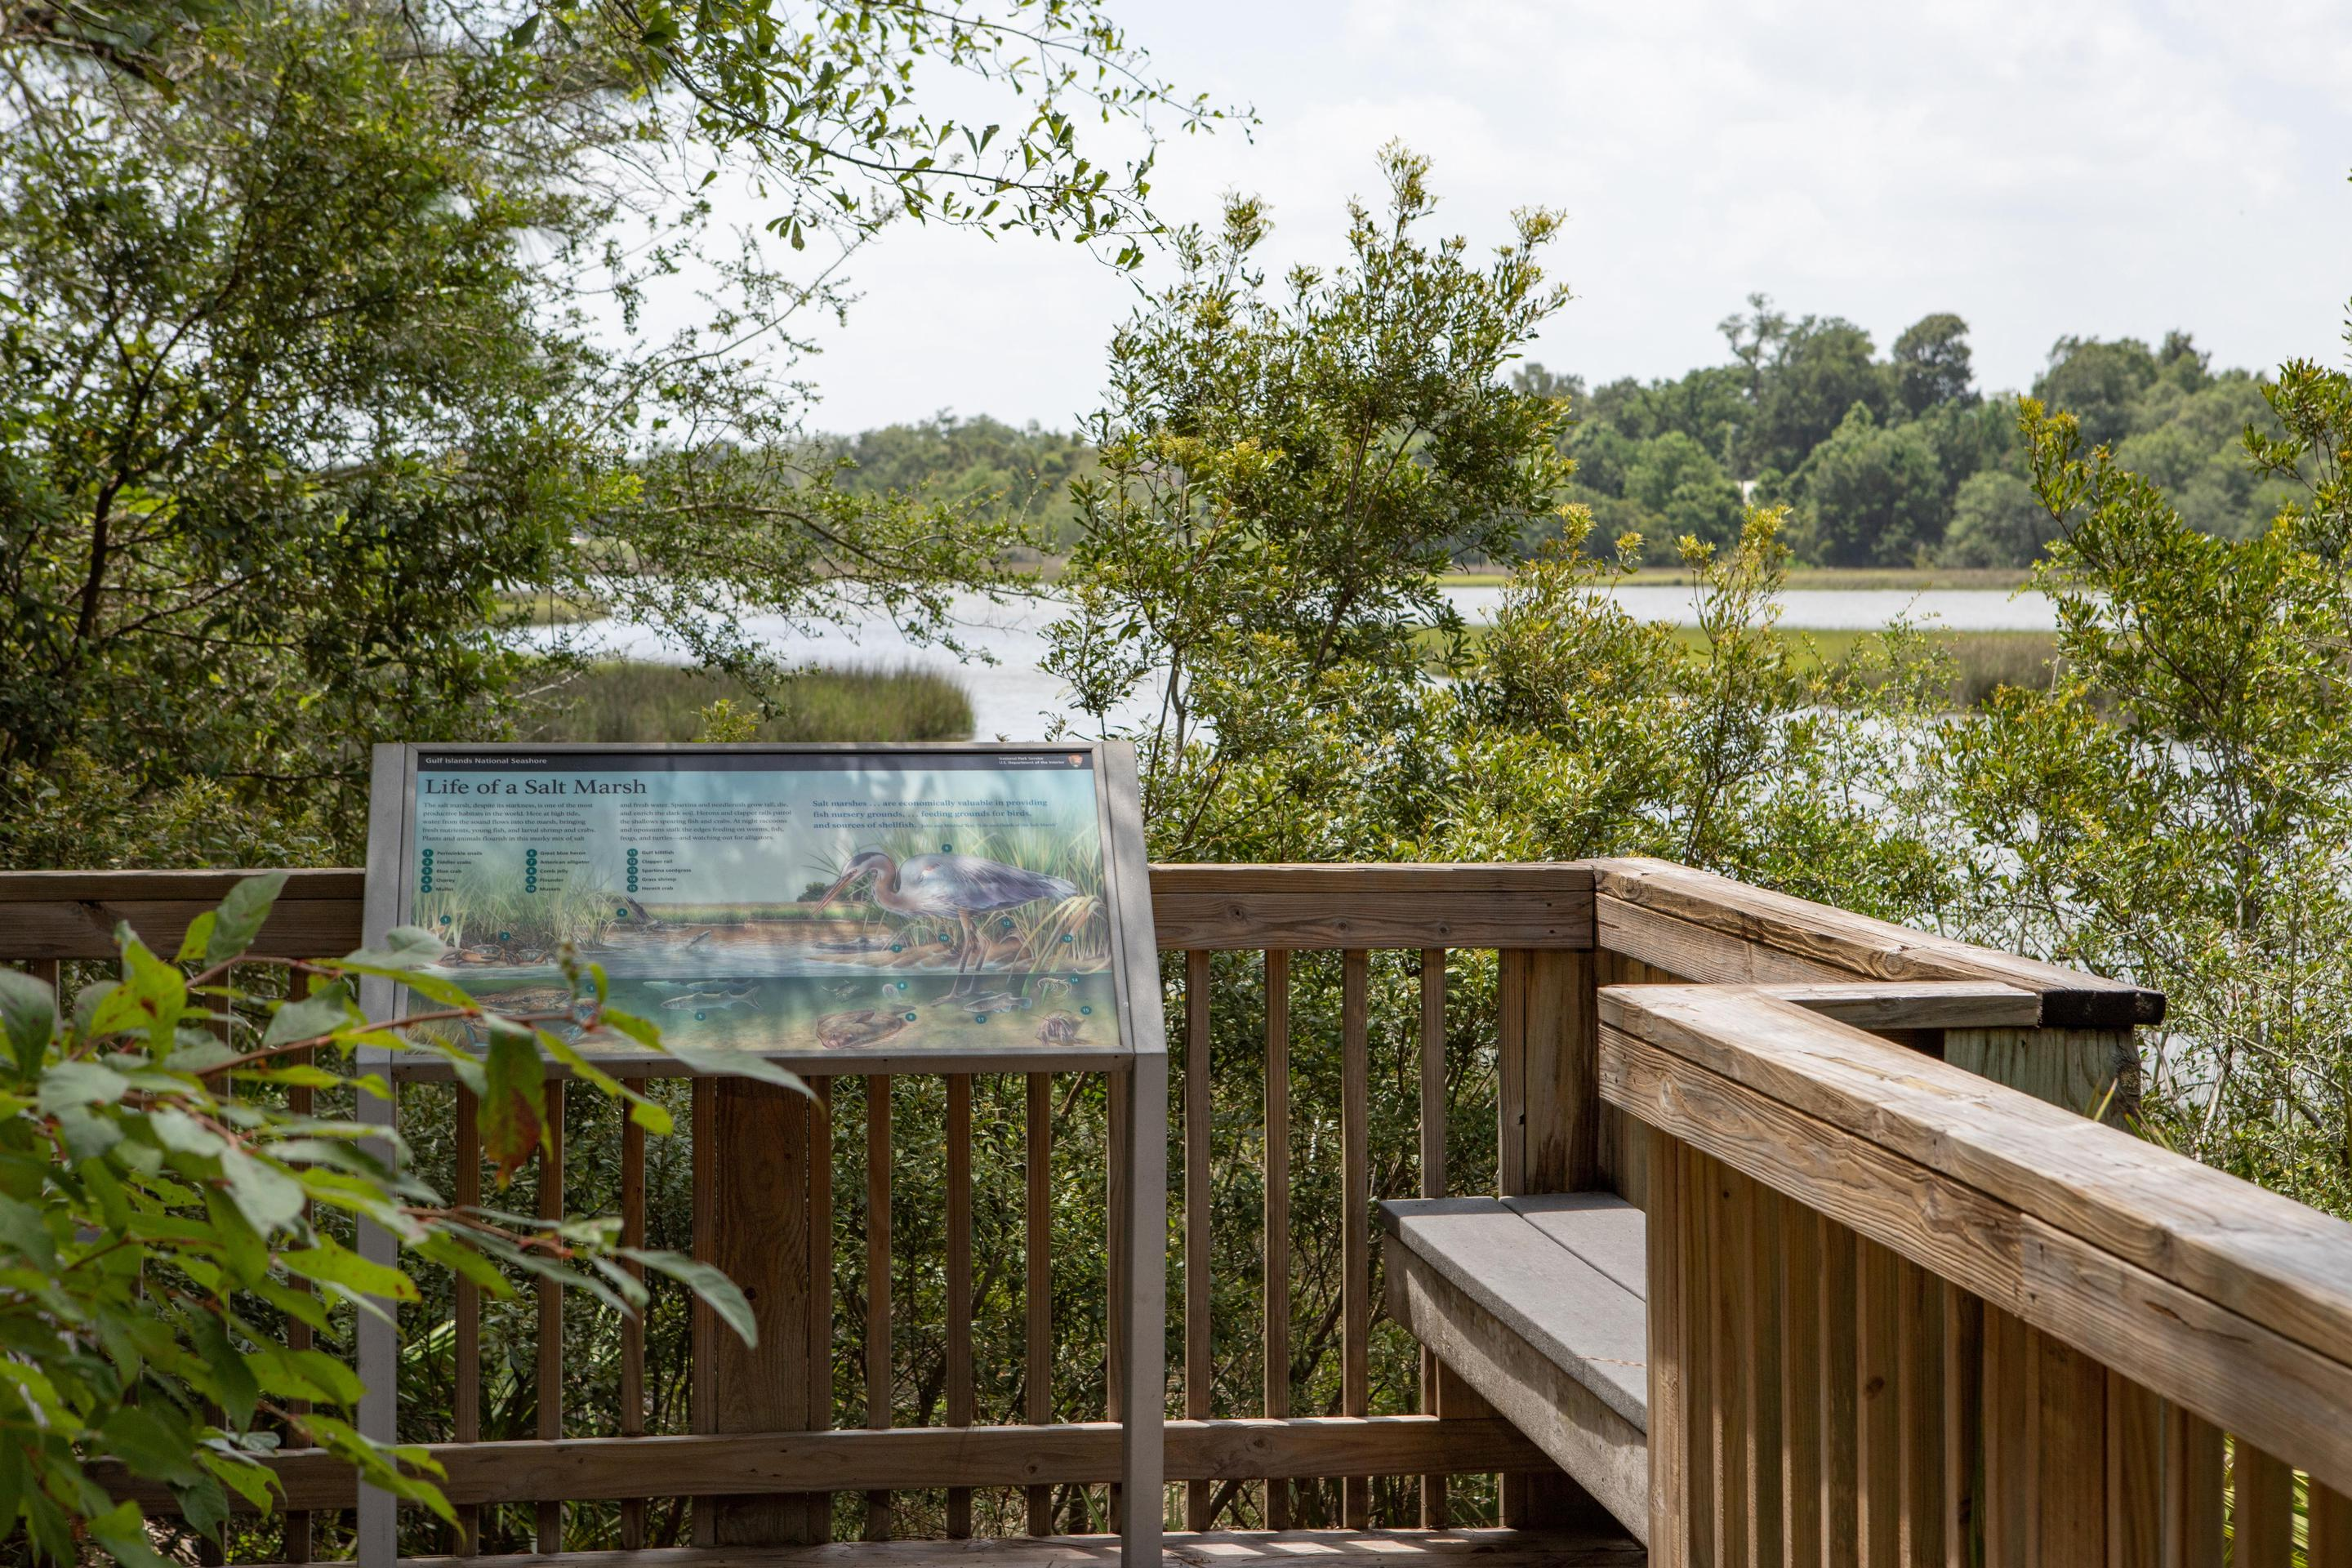 William M. Colmer Visitor CenterThe visitor center provides a boardwalk overlooking Halstead Bayou.